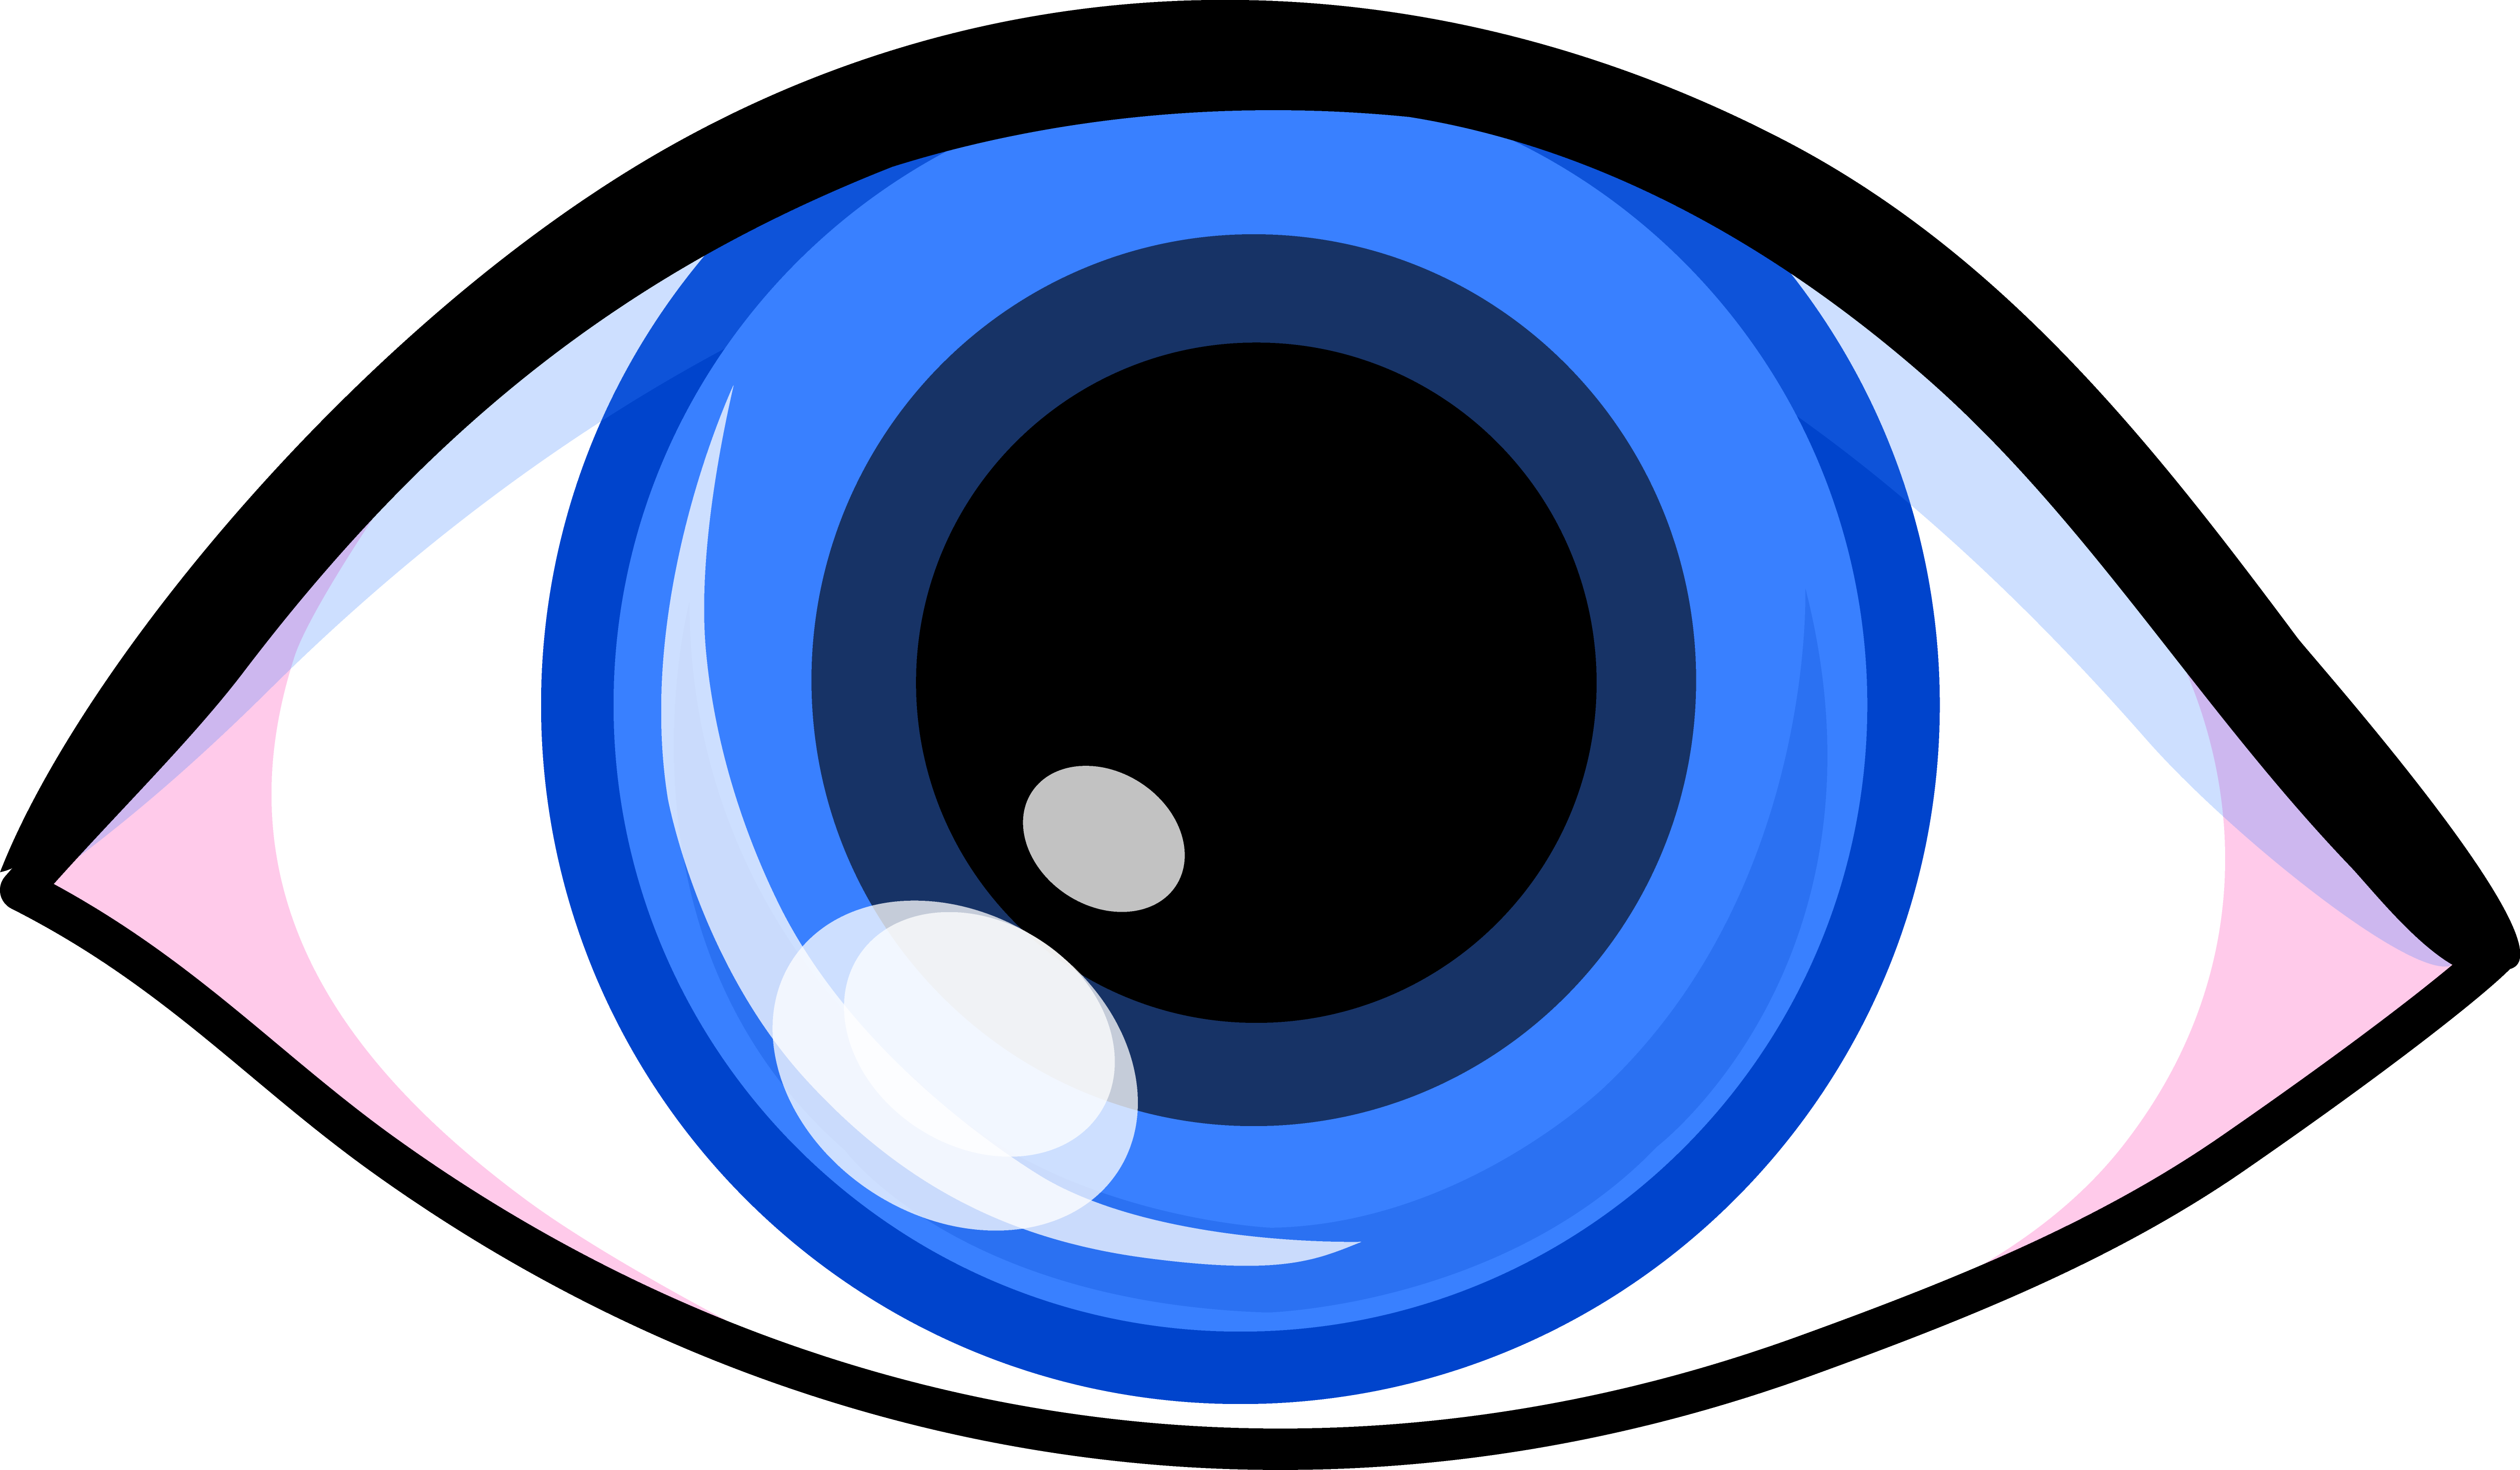 2014 Clipartpanda Com About Terms - Blue Eye Clipart (5076x2962)